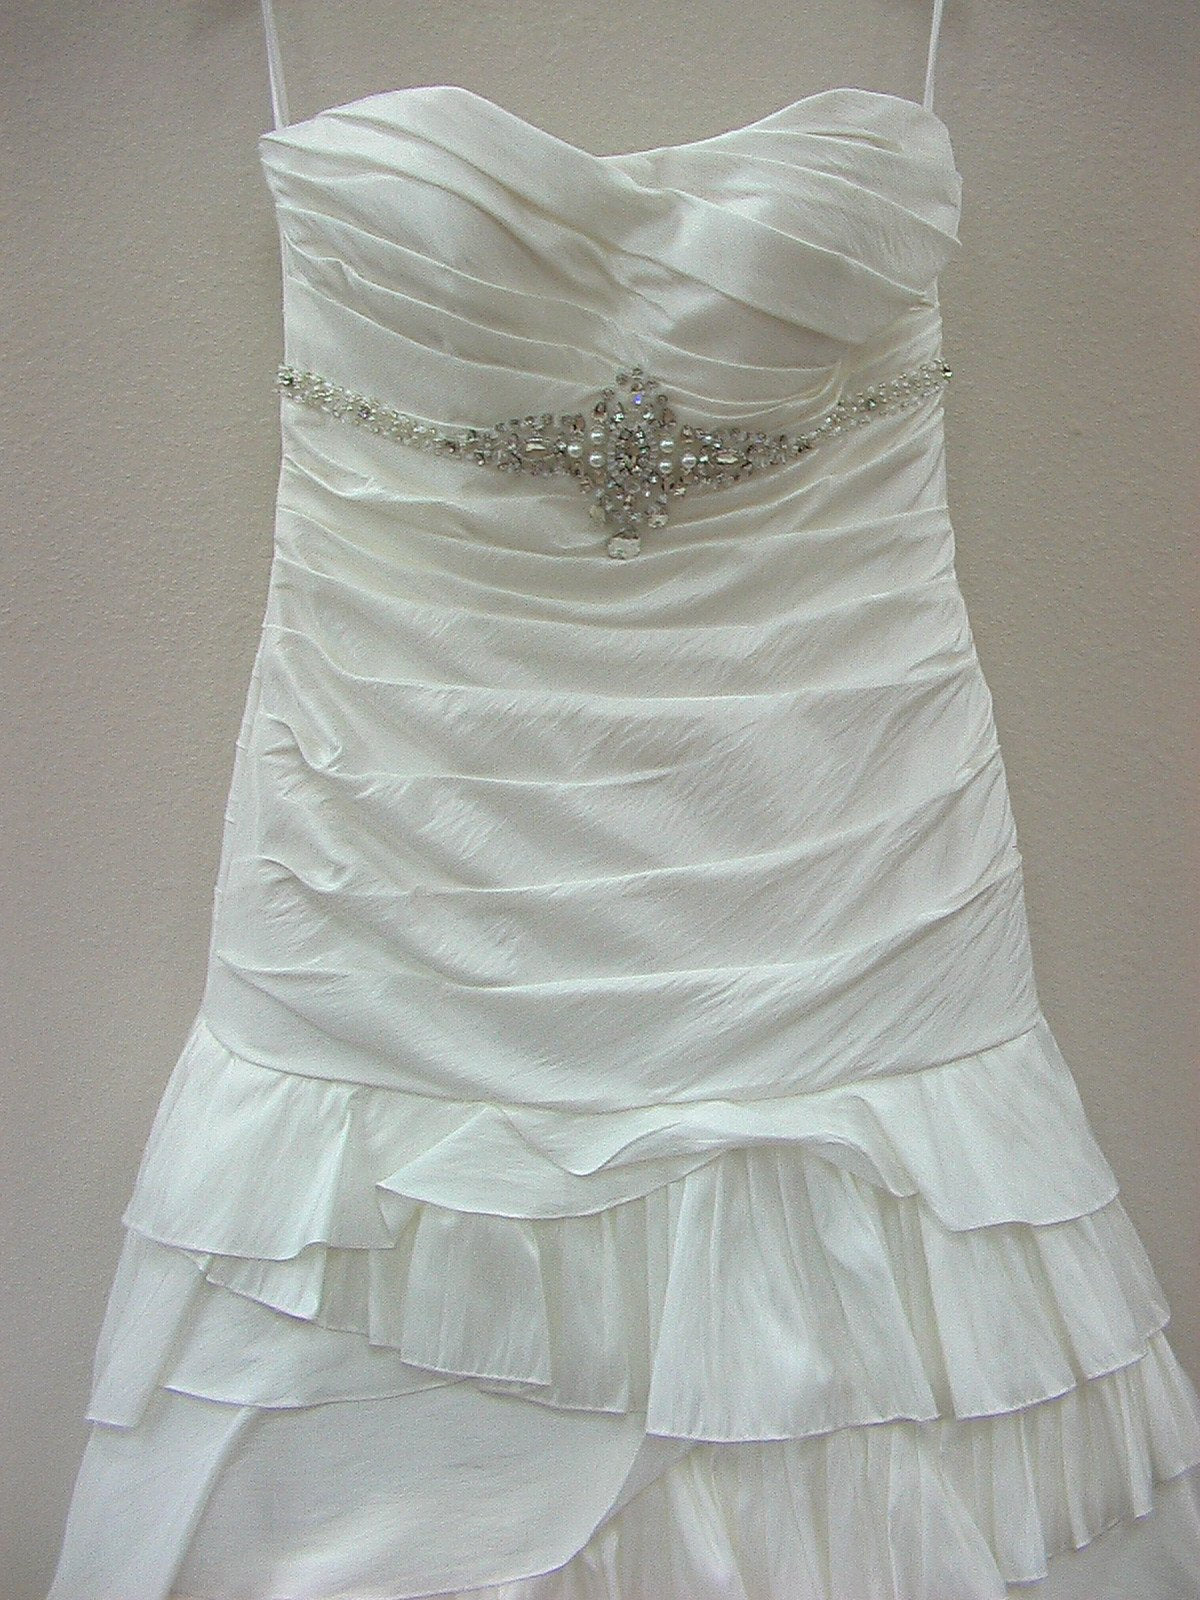 Jacquelin Exclusive 19860 Ivory/Silver size 12 In Stock Wedding Dress - Tom's Bridal